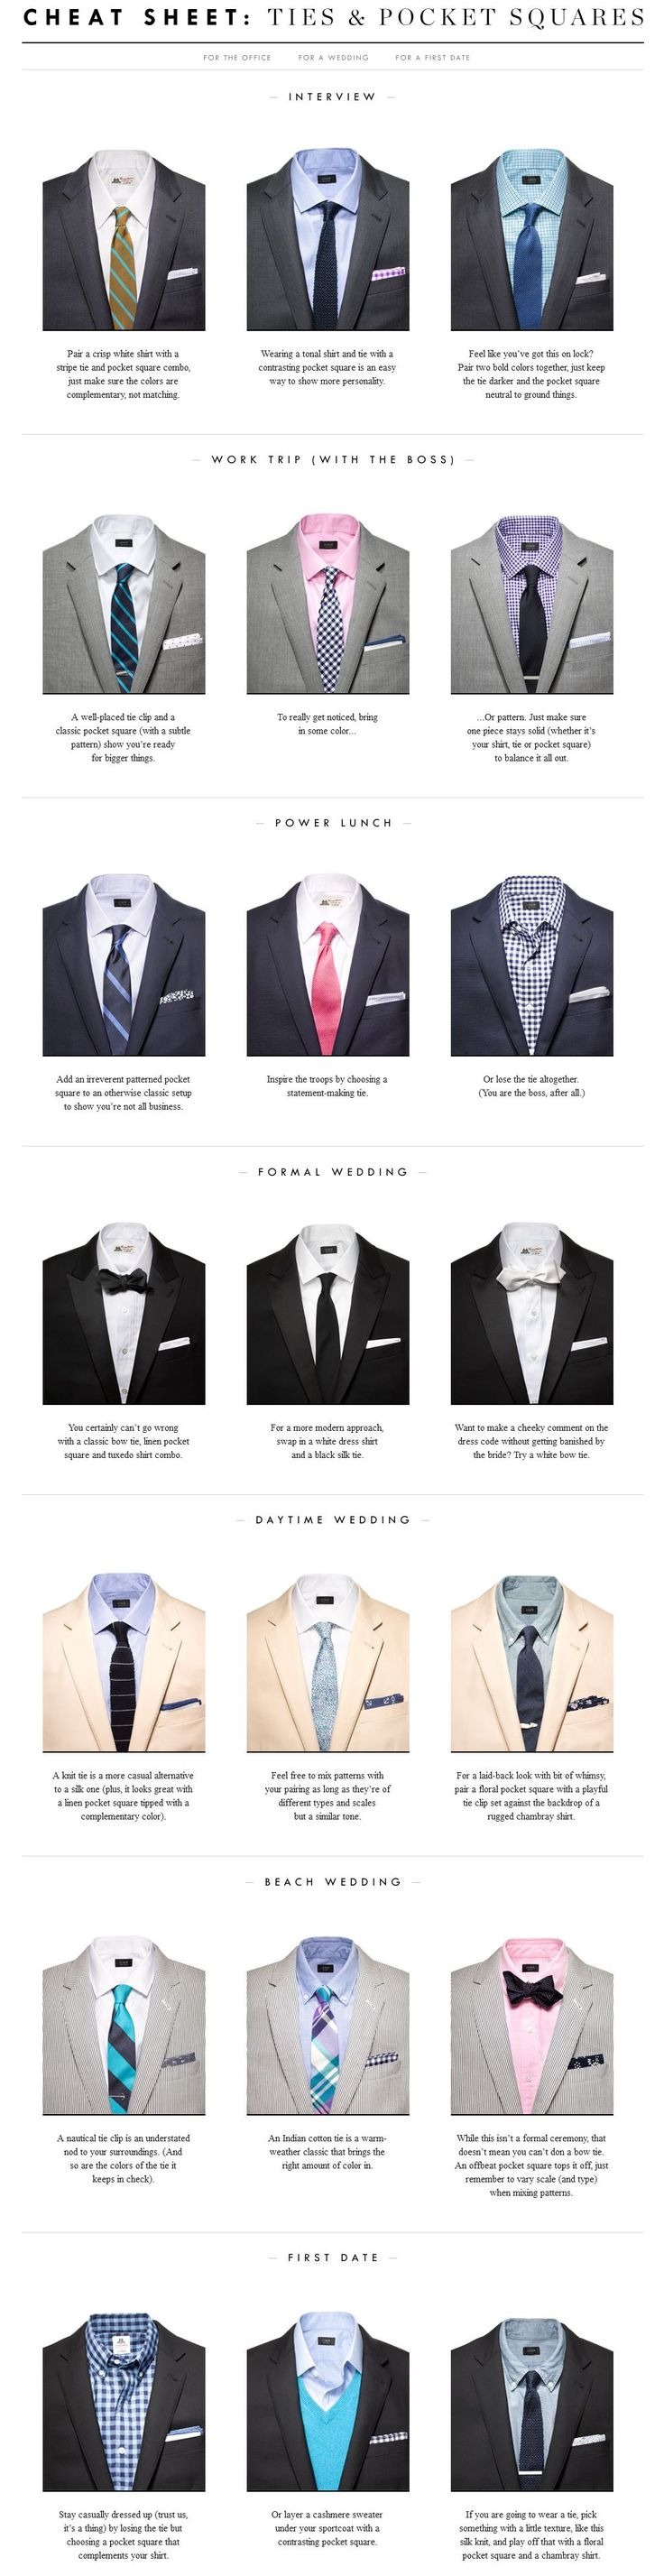 a look at different pocket squares, ties and lapels-week 4